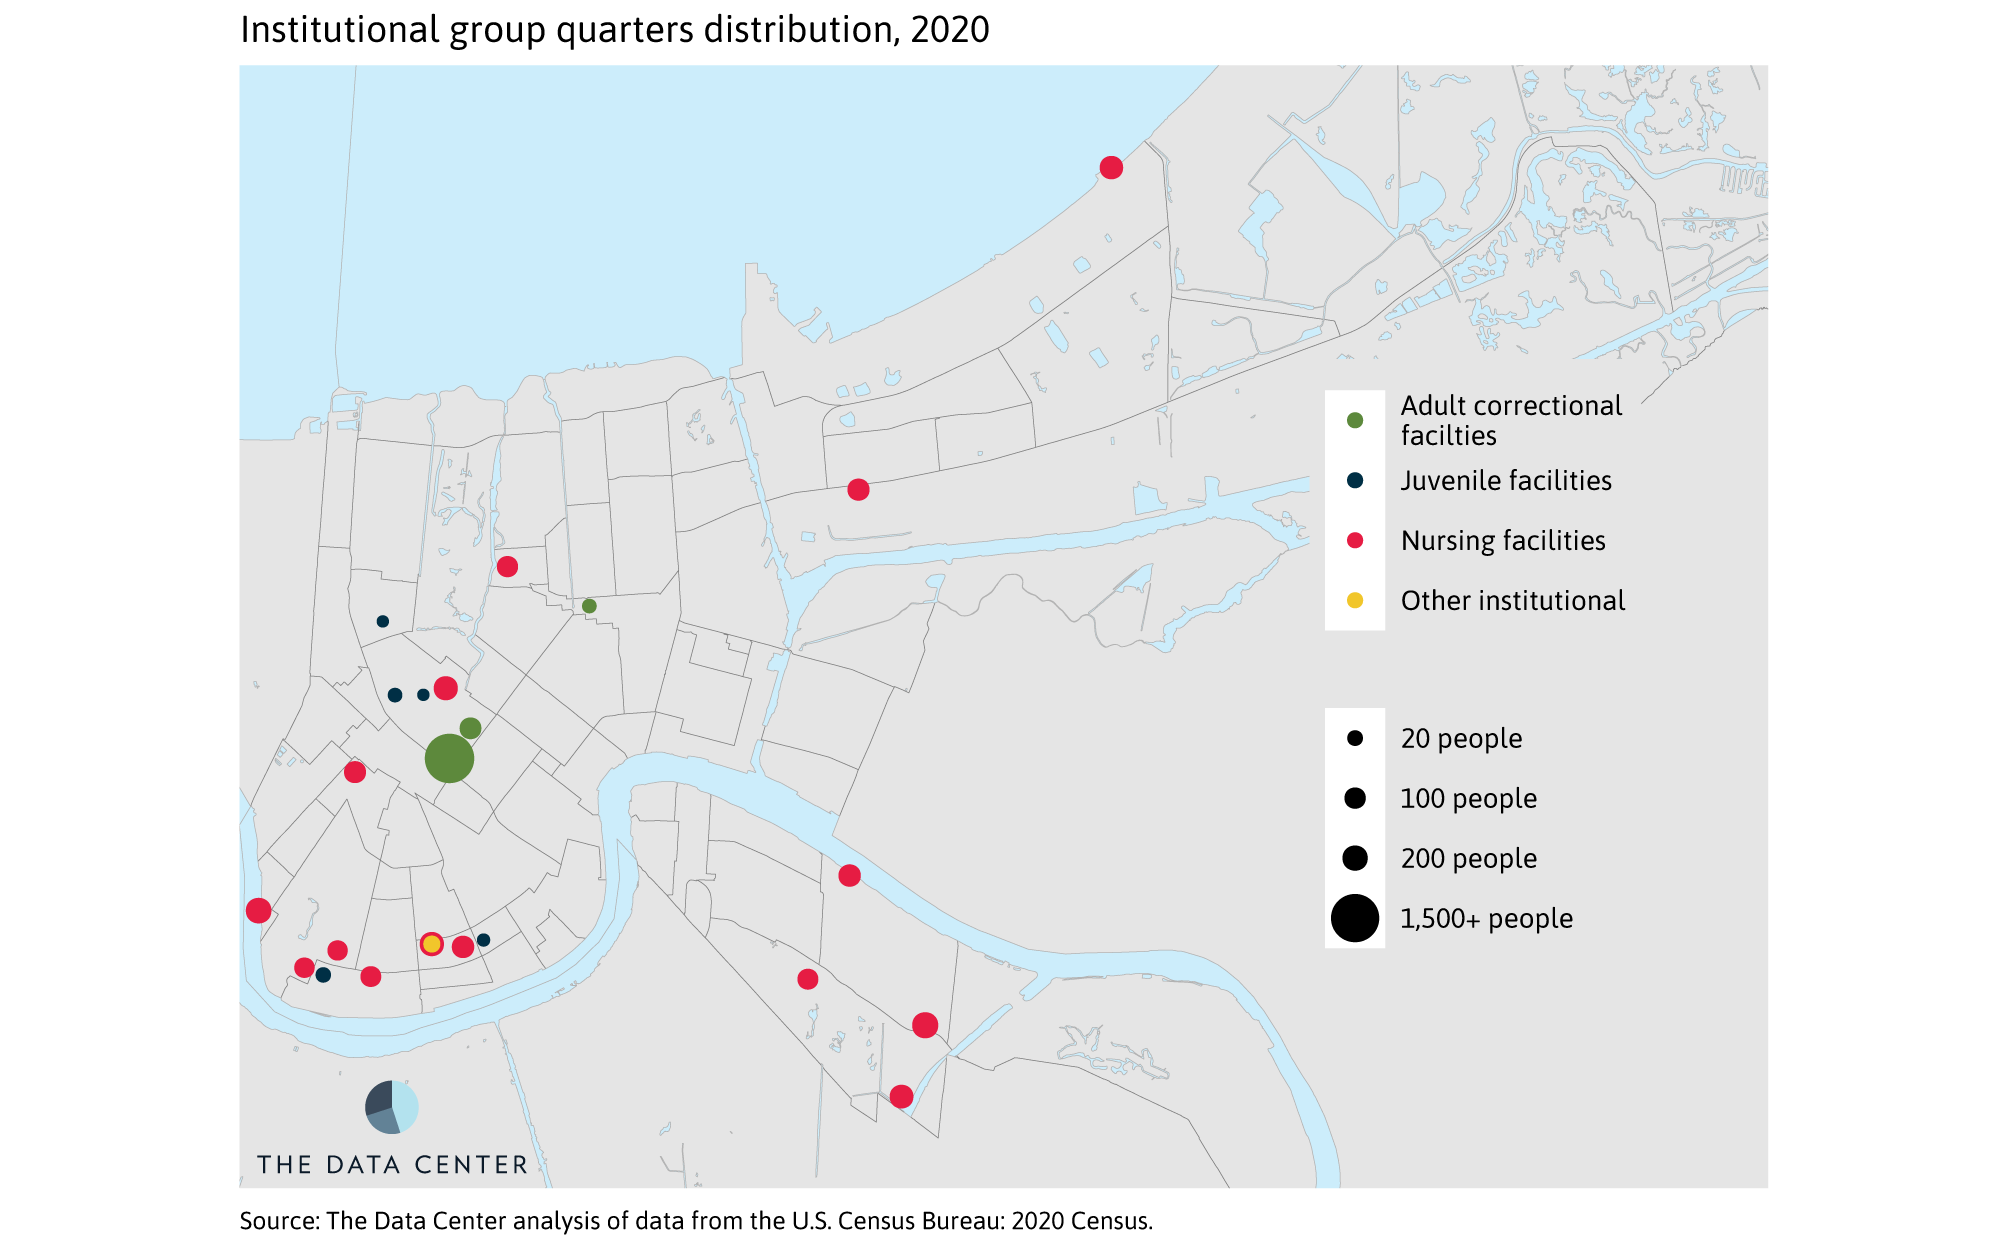 Residents in group quarters and average household size across the New Orleans metro